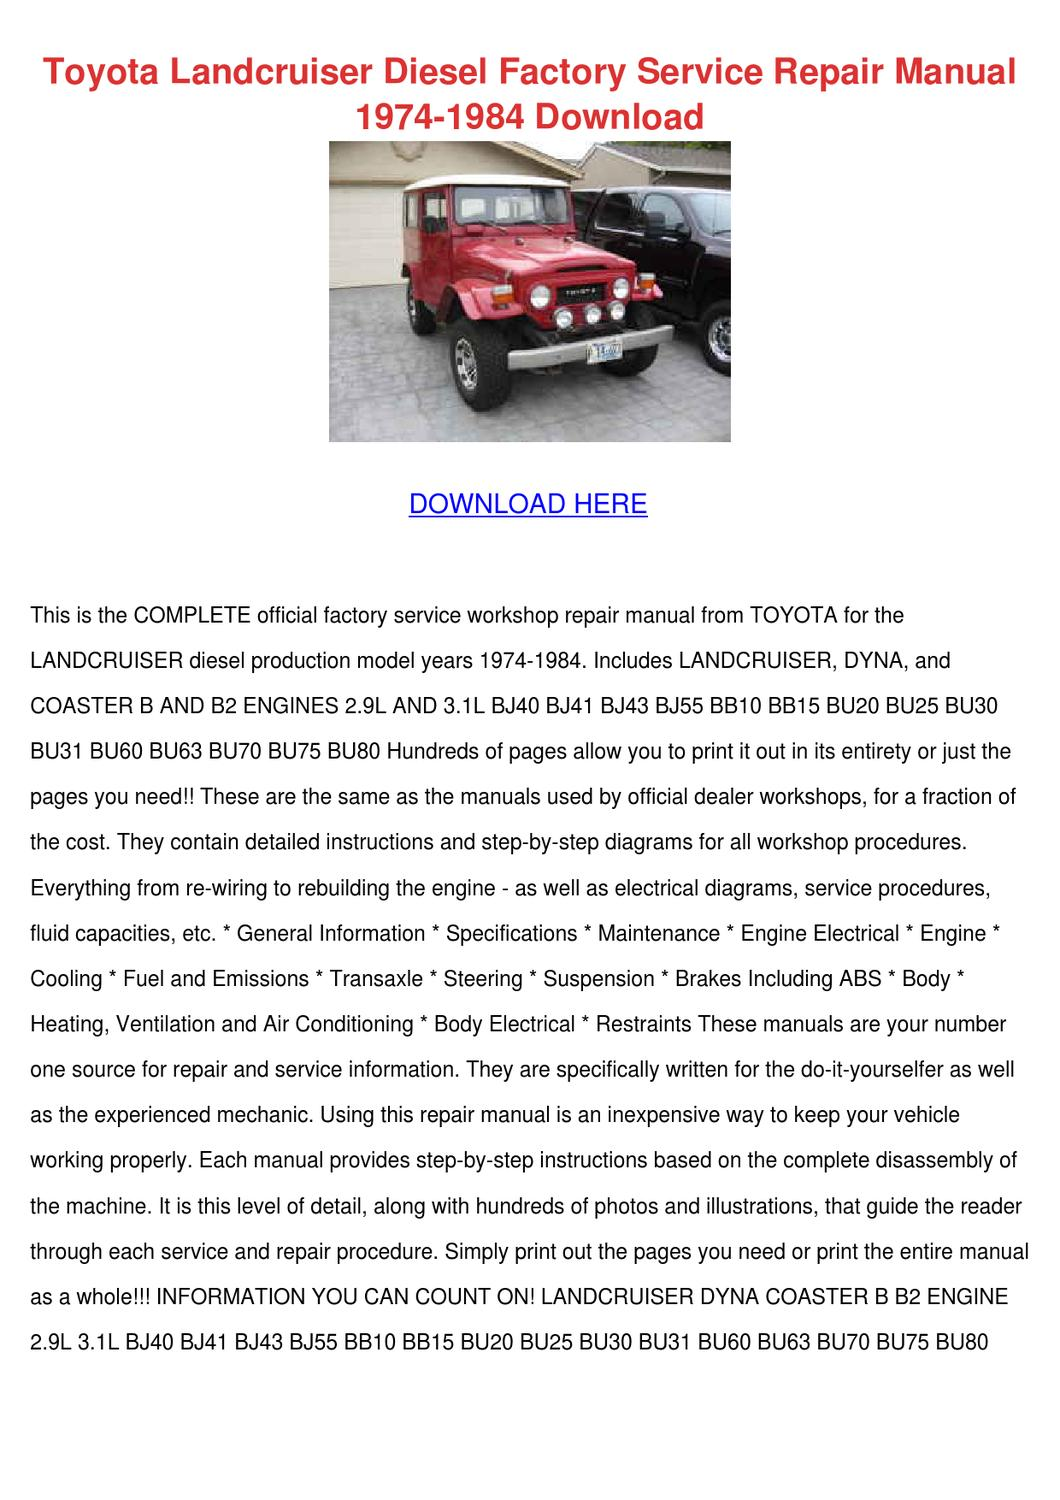 Toyota Landcruiser Diesel Factory Service Rep by Wilma Canlas - issuu